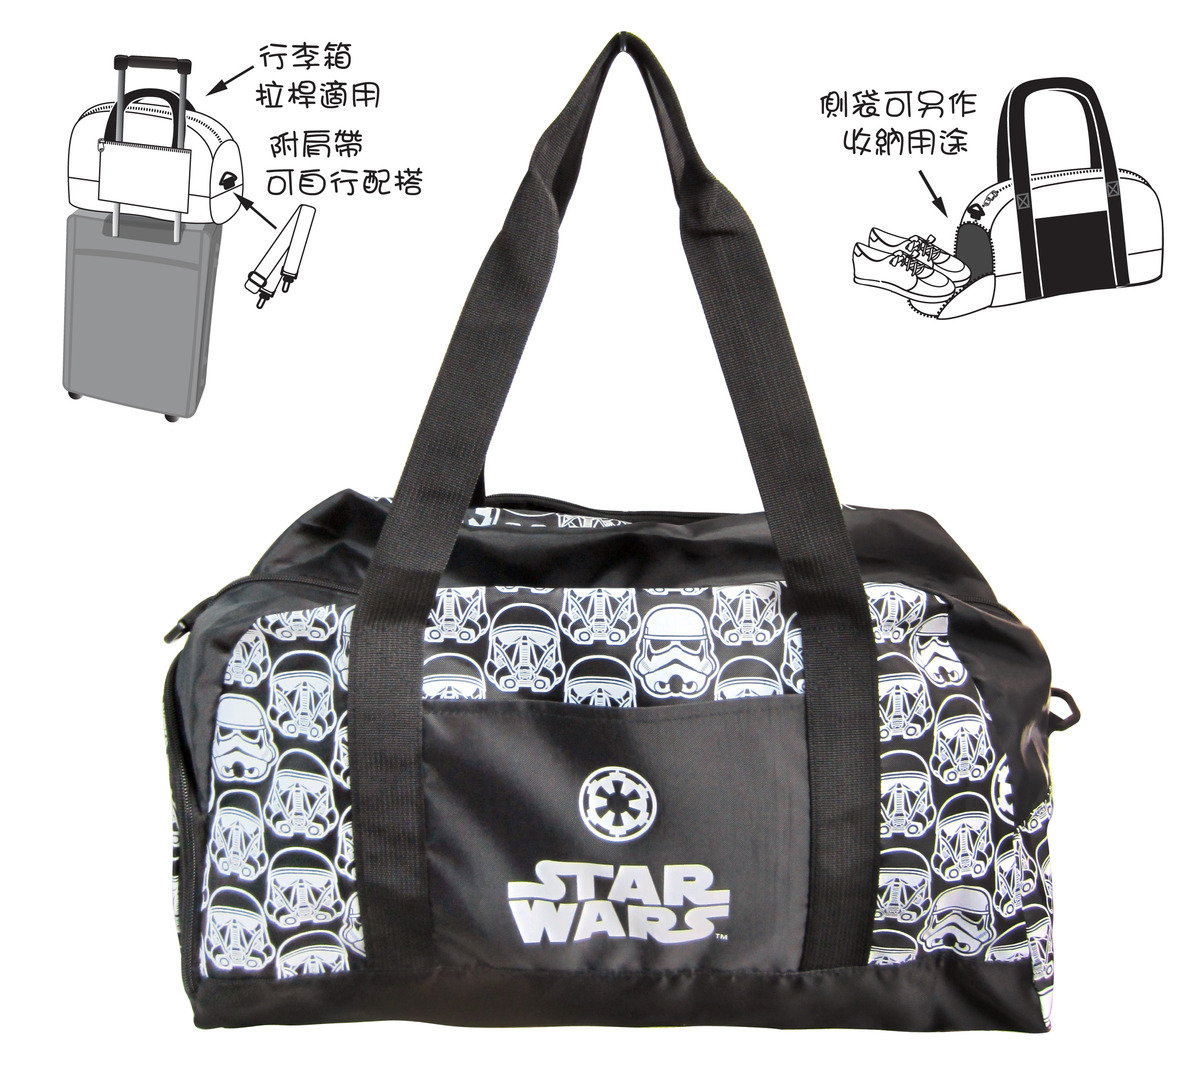 DISNEY-Travel bag (Licensed by Disney)